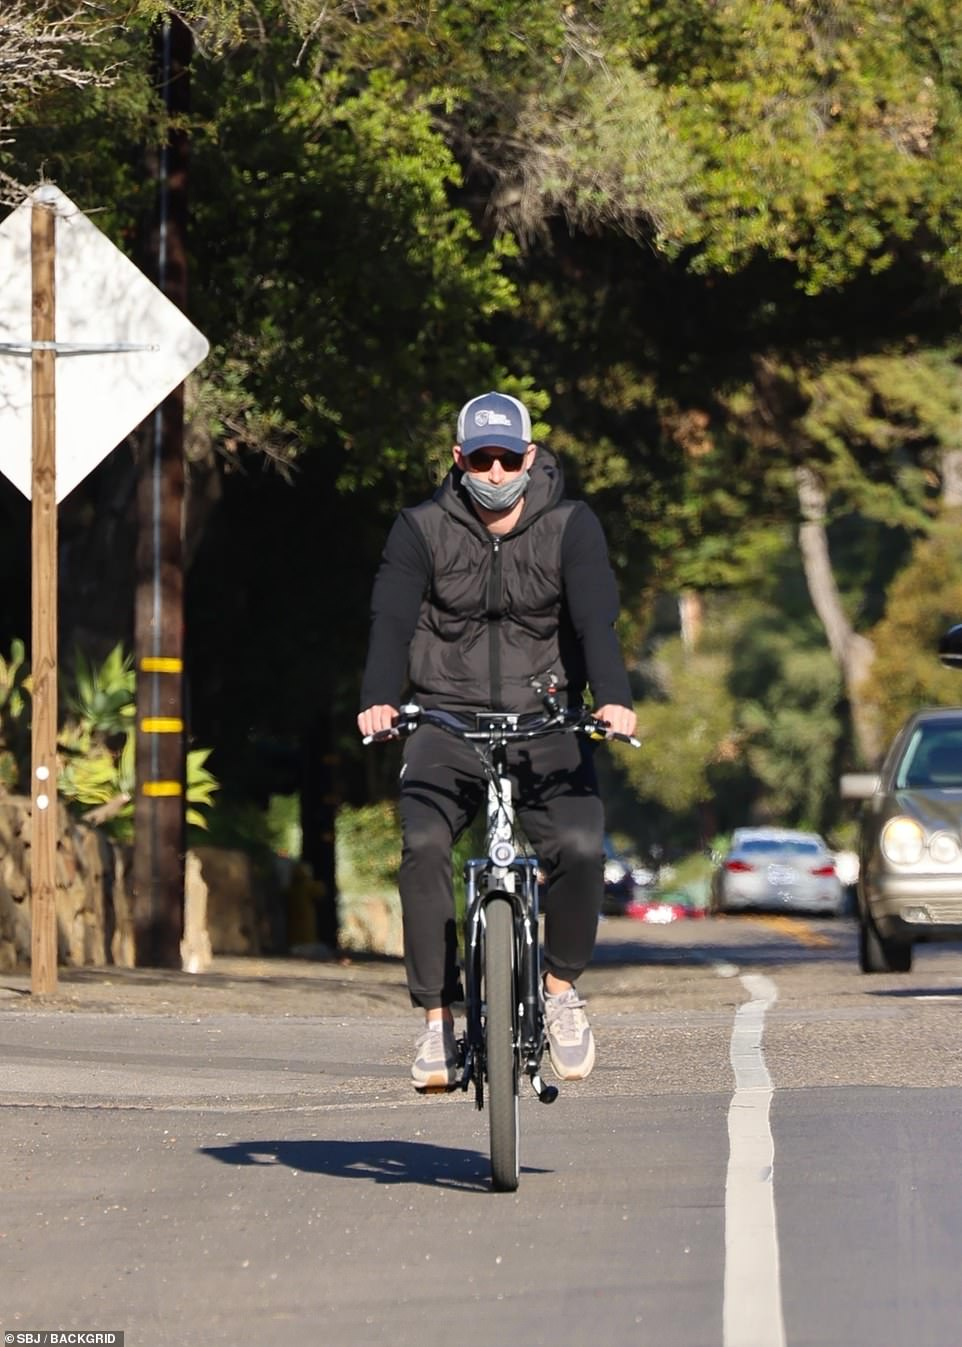 Harry, wearing New Balance trainers, a hooded top, u00A362 Adidas sweatpants, The Mission Continues veterans' association baseball cap, sunglasses and mask, looked serious while racing through LA traffic